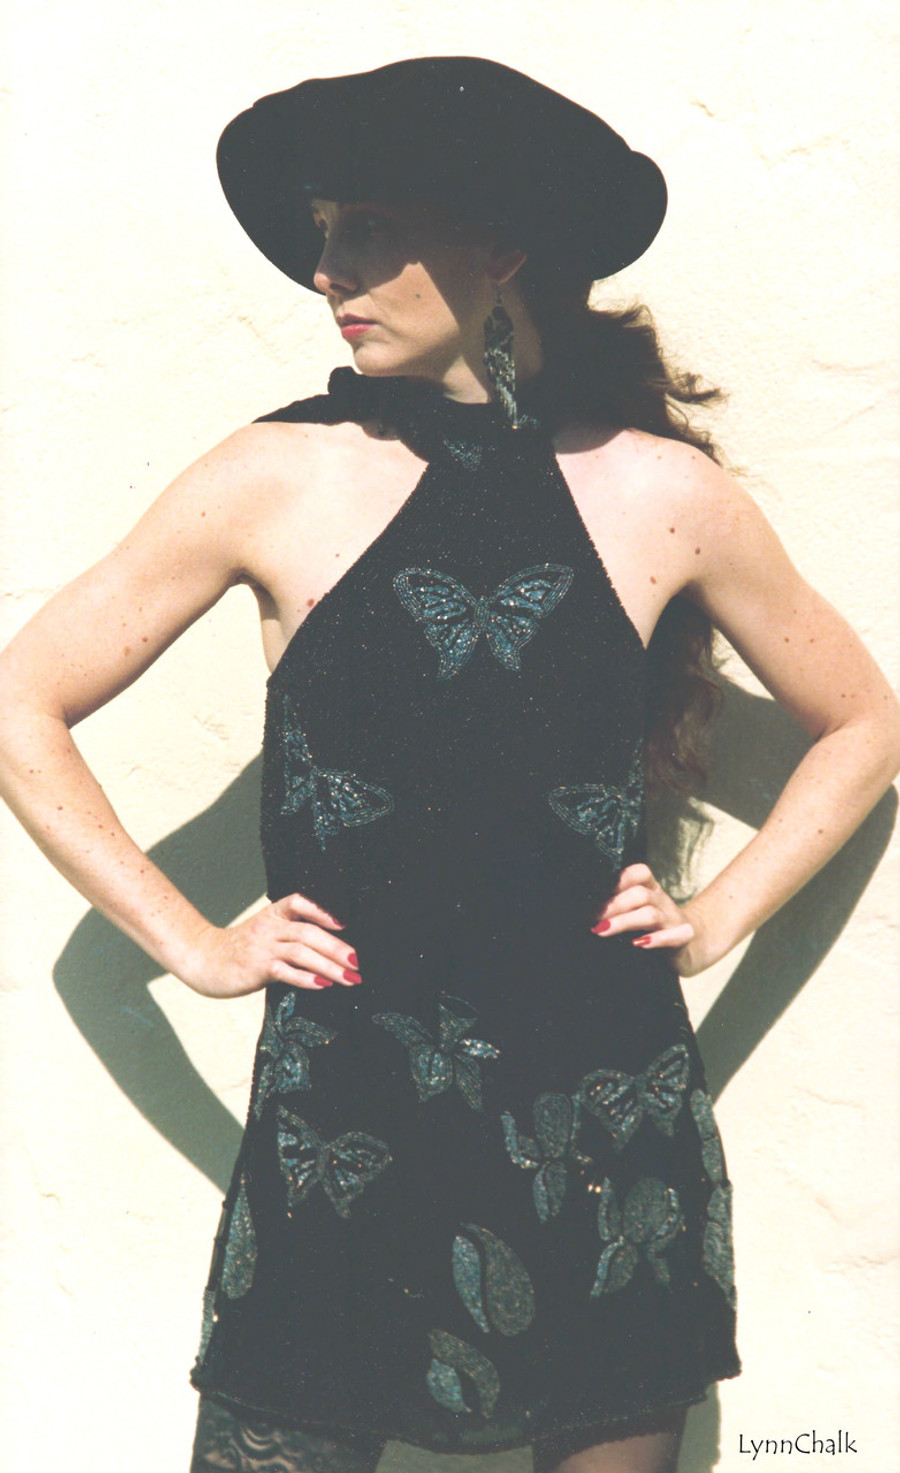 One-of-a-kind Hand Beaded Tie-Neck Dress by Lynn Chalk with Butterflies and Flowers in Black and Silver Beads on Silk Chiffon